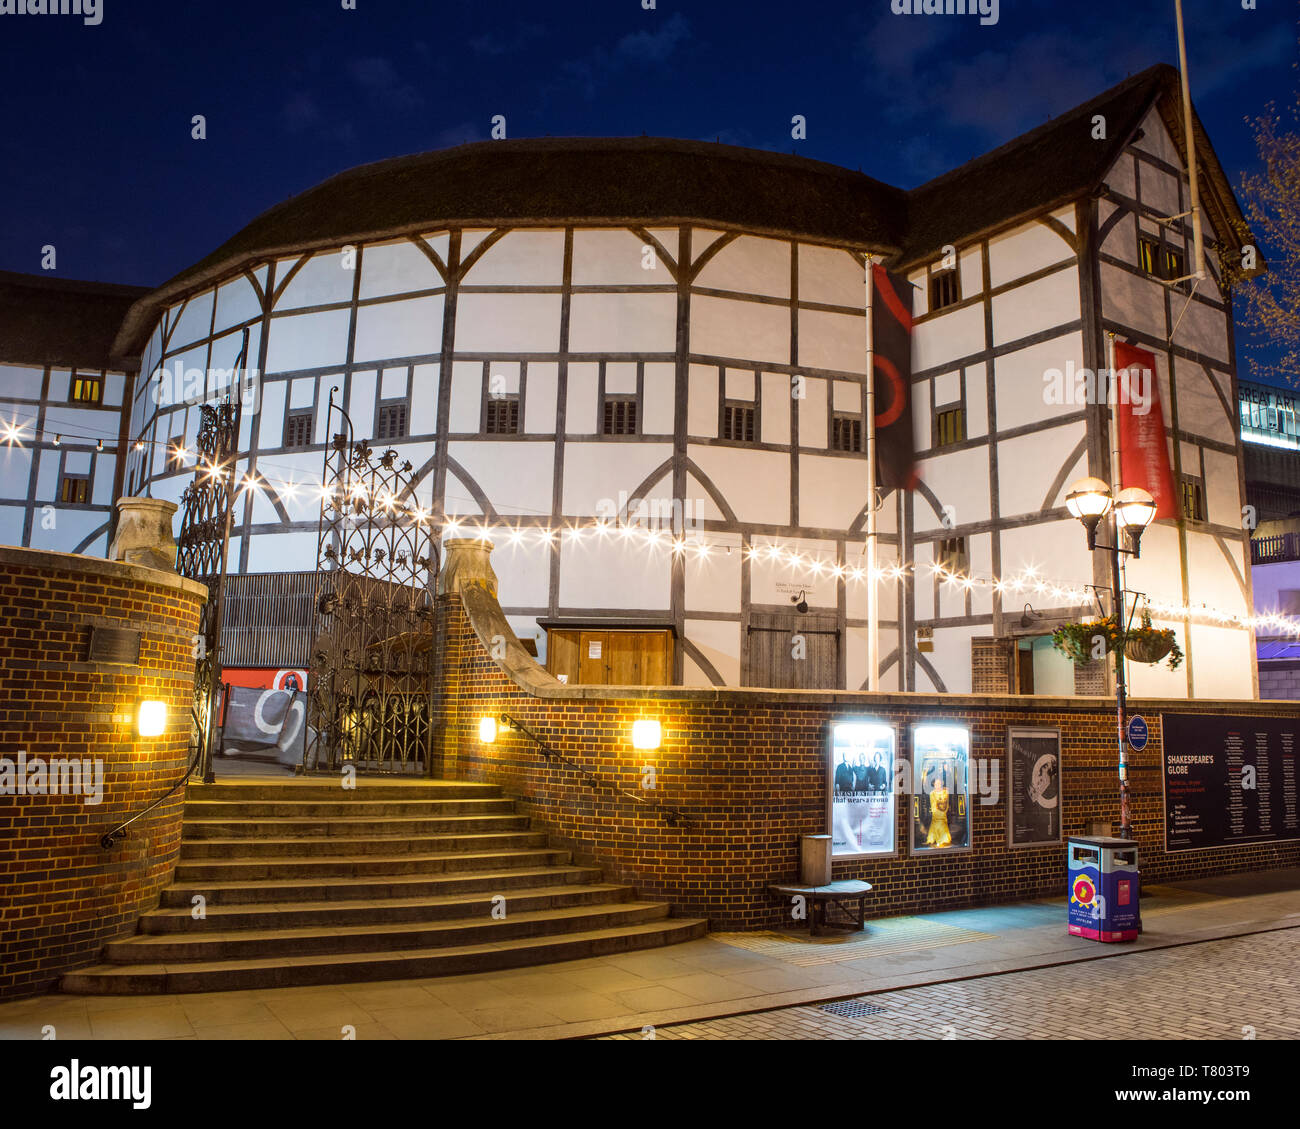 London Uk April 1st 2019 A View Of The Reconstruction Of The Historic Globe Theatre An Elizabethan Playhouse Associated With William Shakespeare Stock Photo Alamy